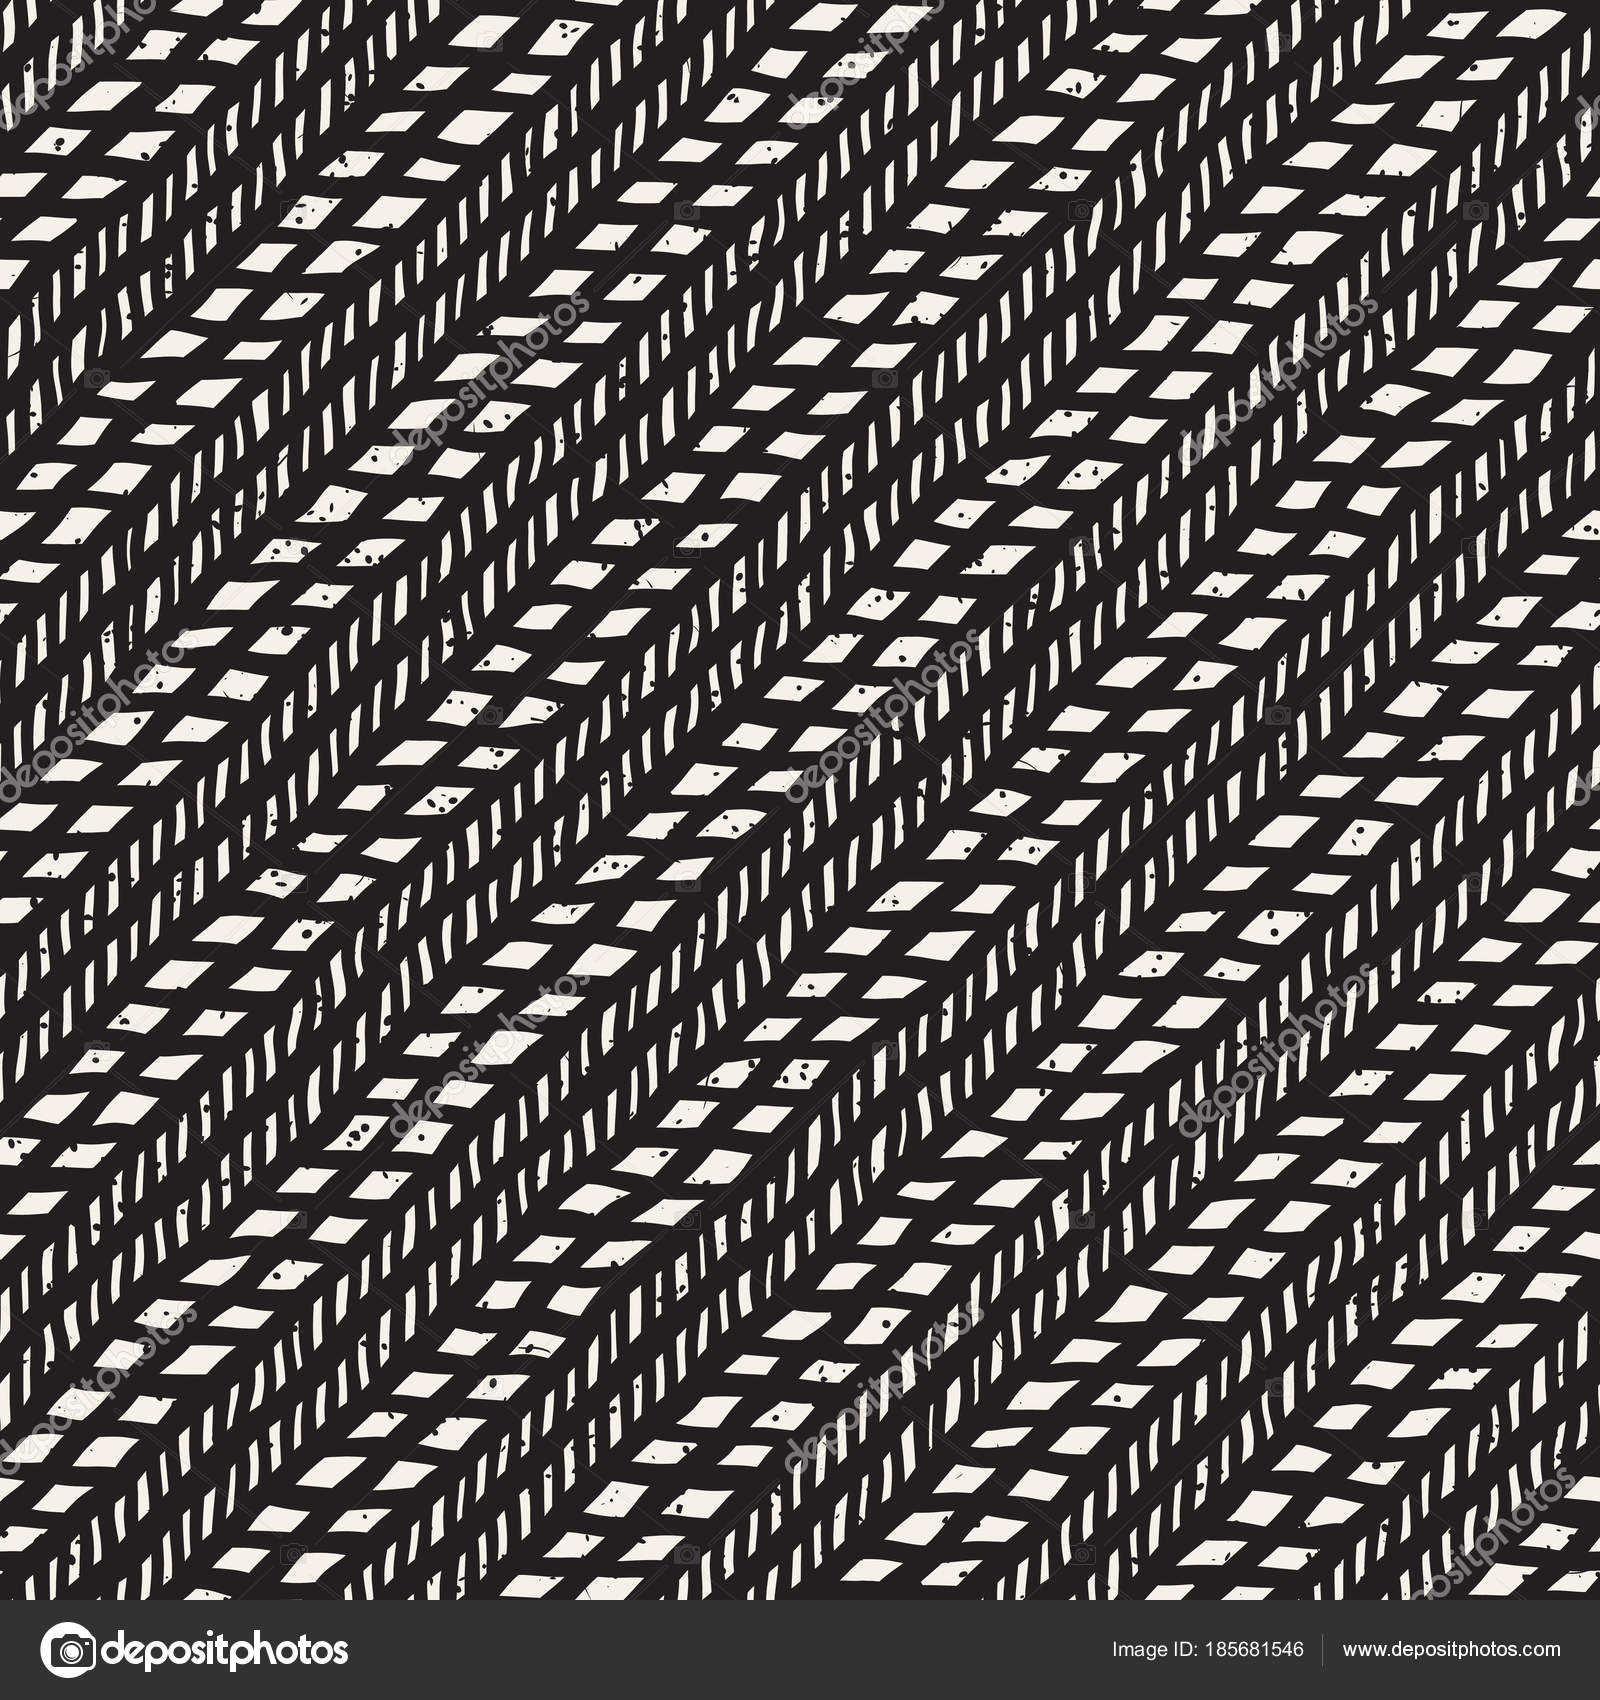 Simple ink geometric pattern. Monochrome black and white strokes ...